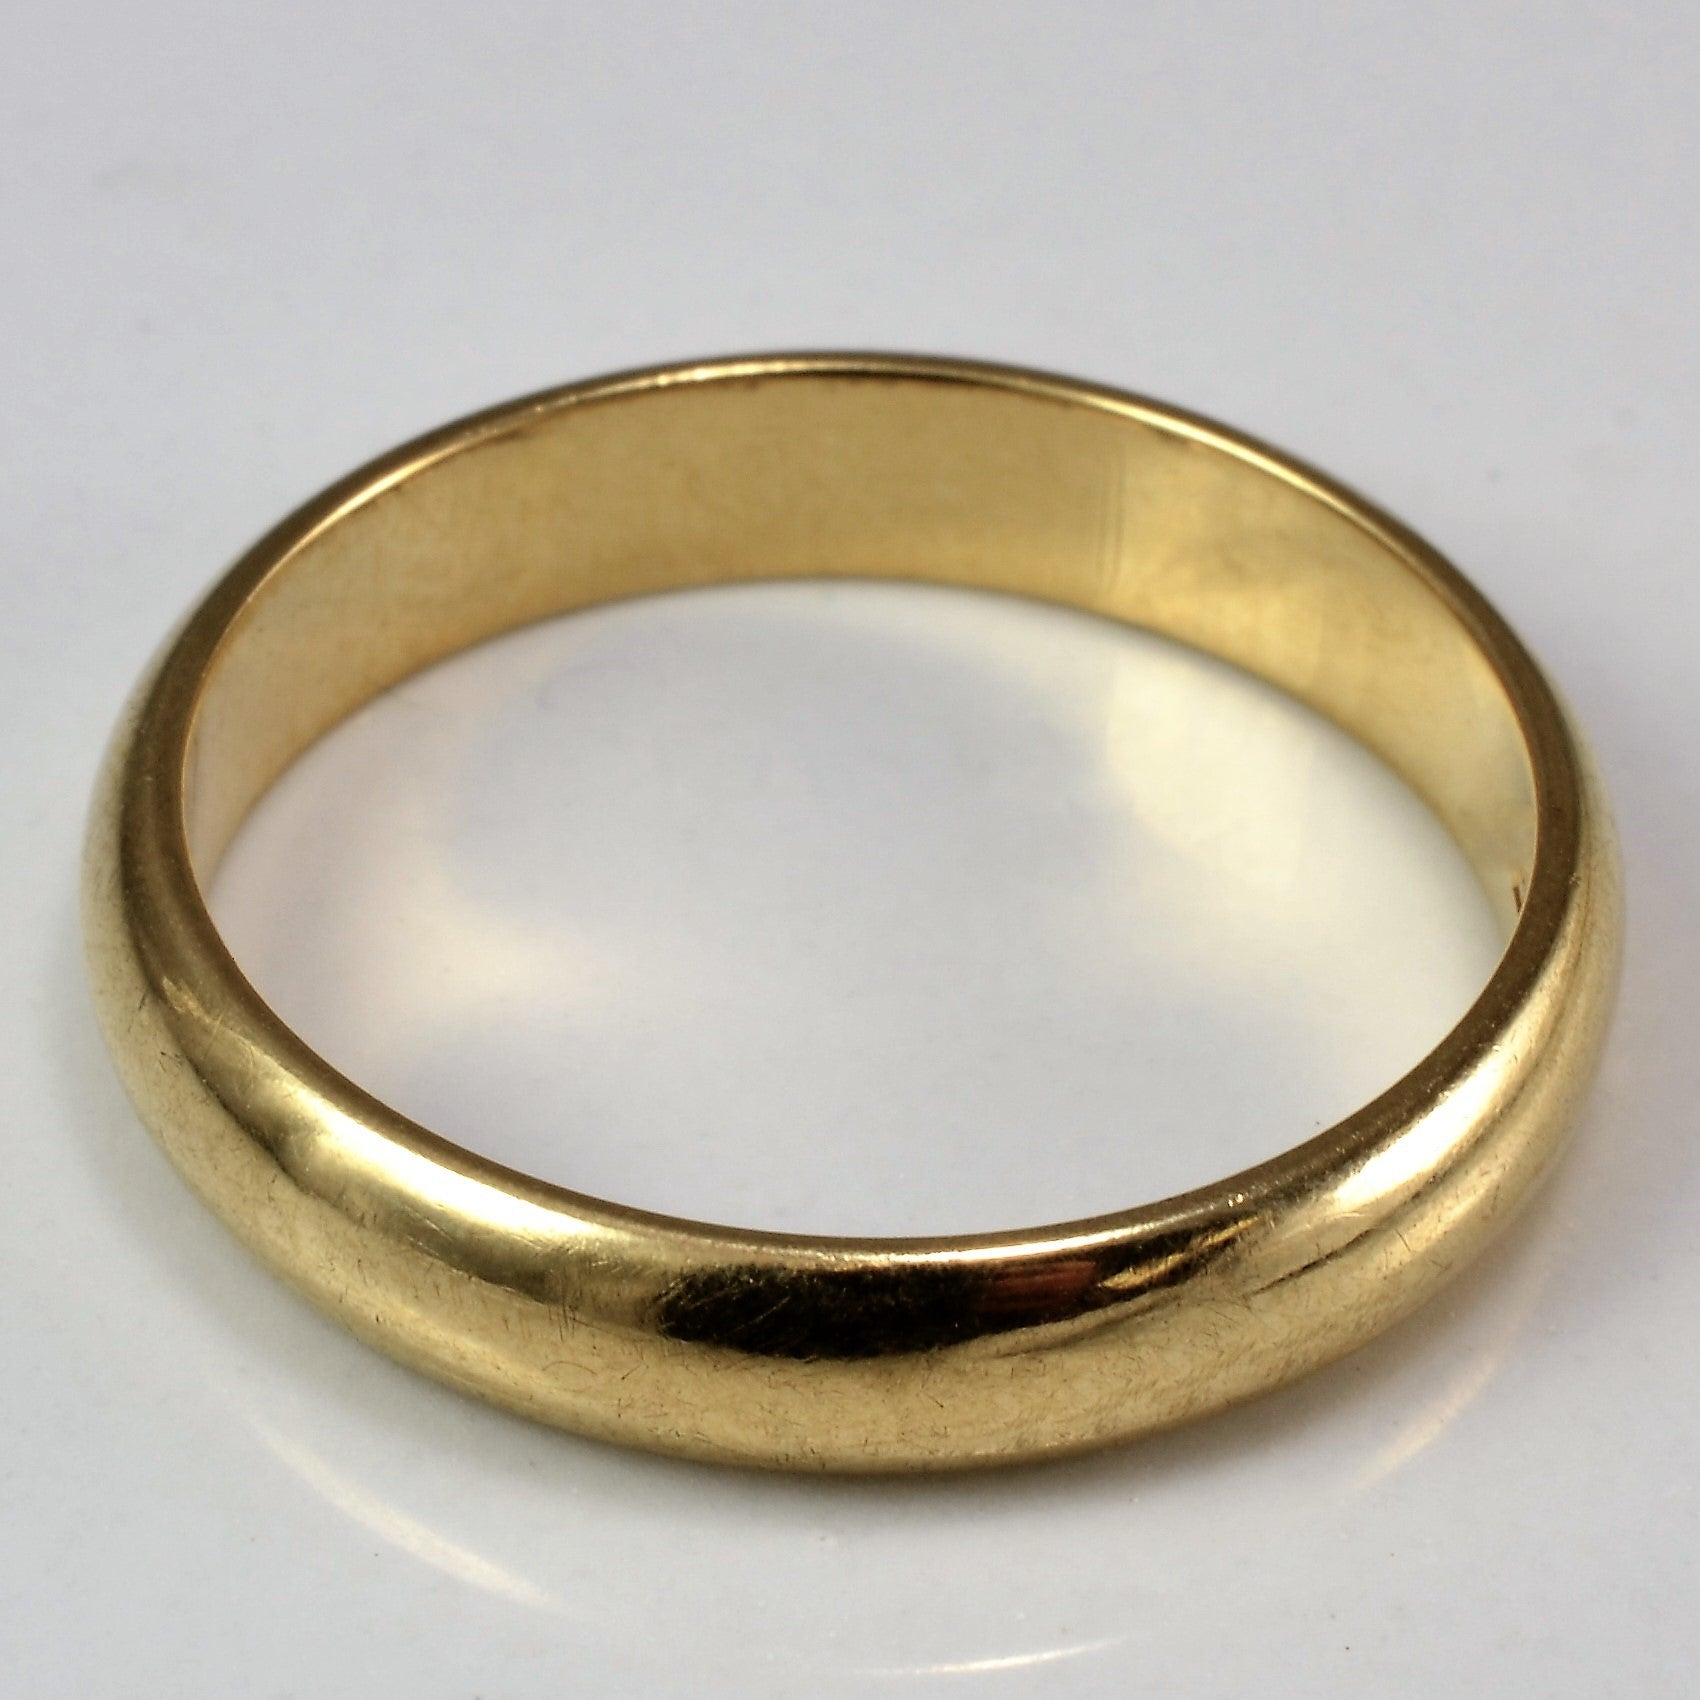 Vintage Comfort Fit Wedding Band | SZ 7.75 |